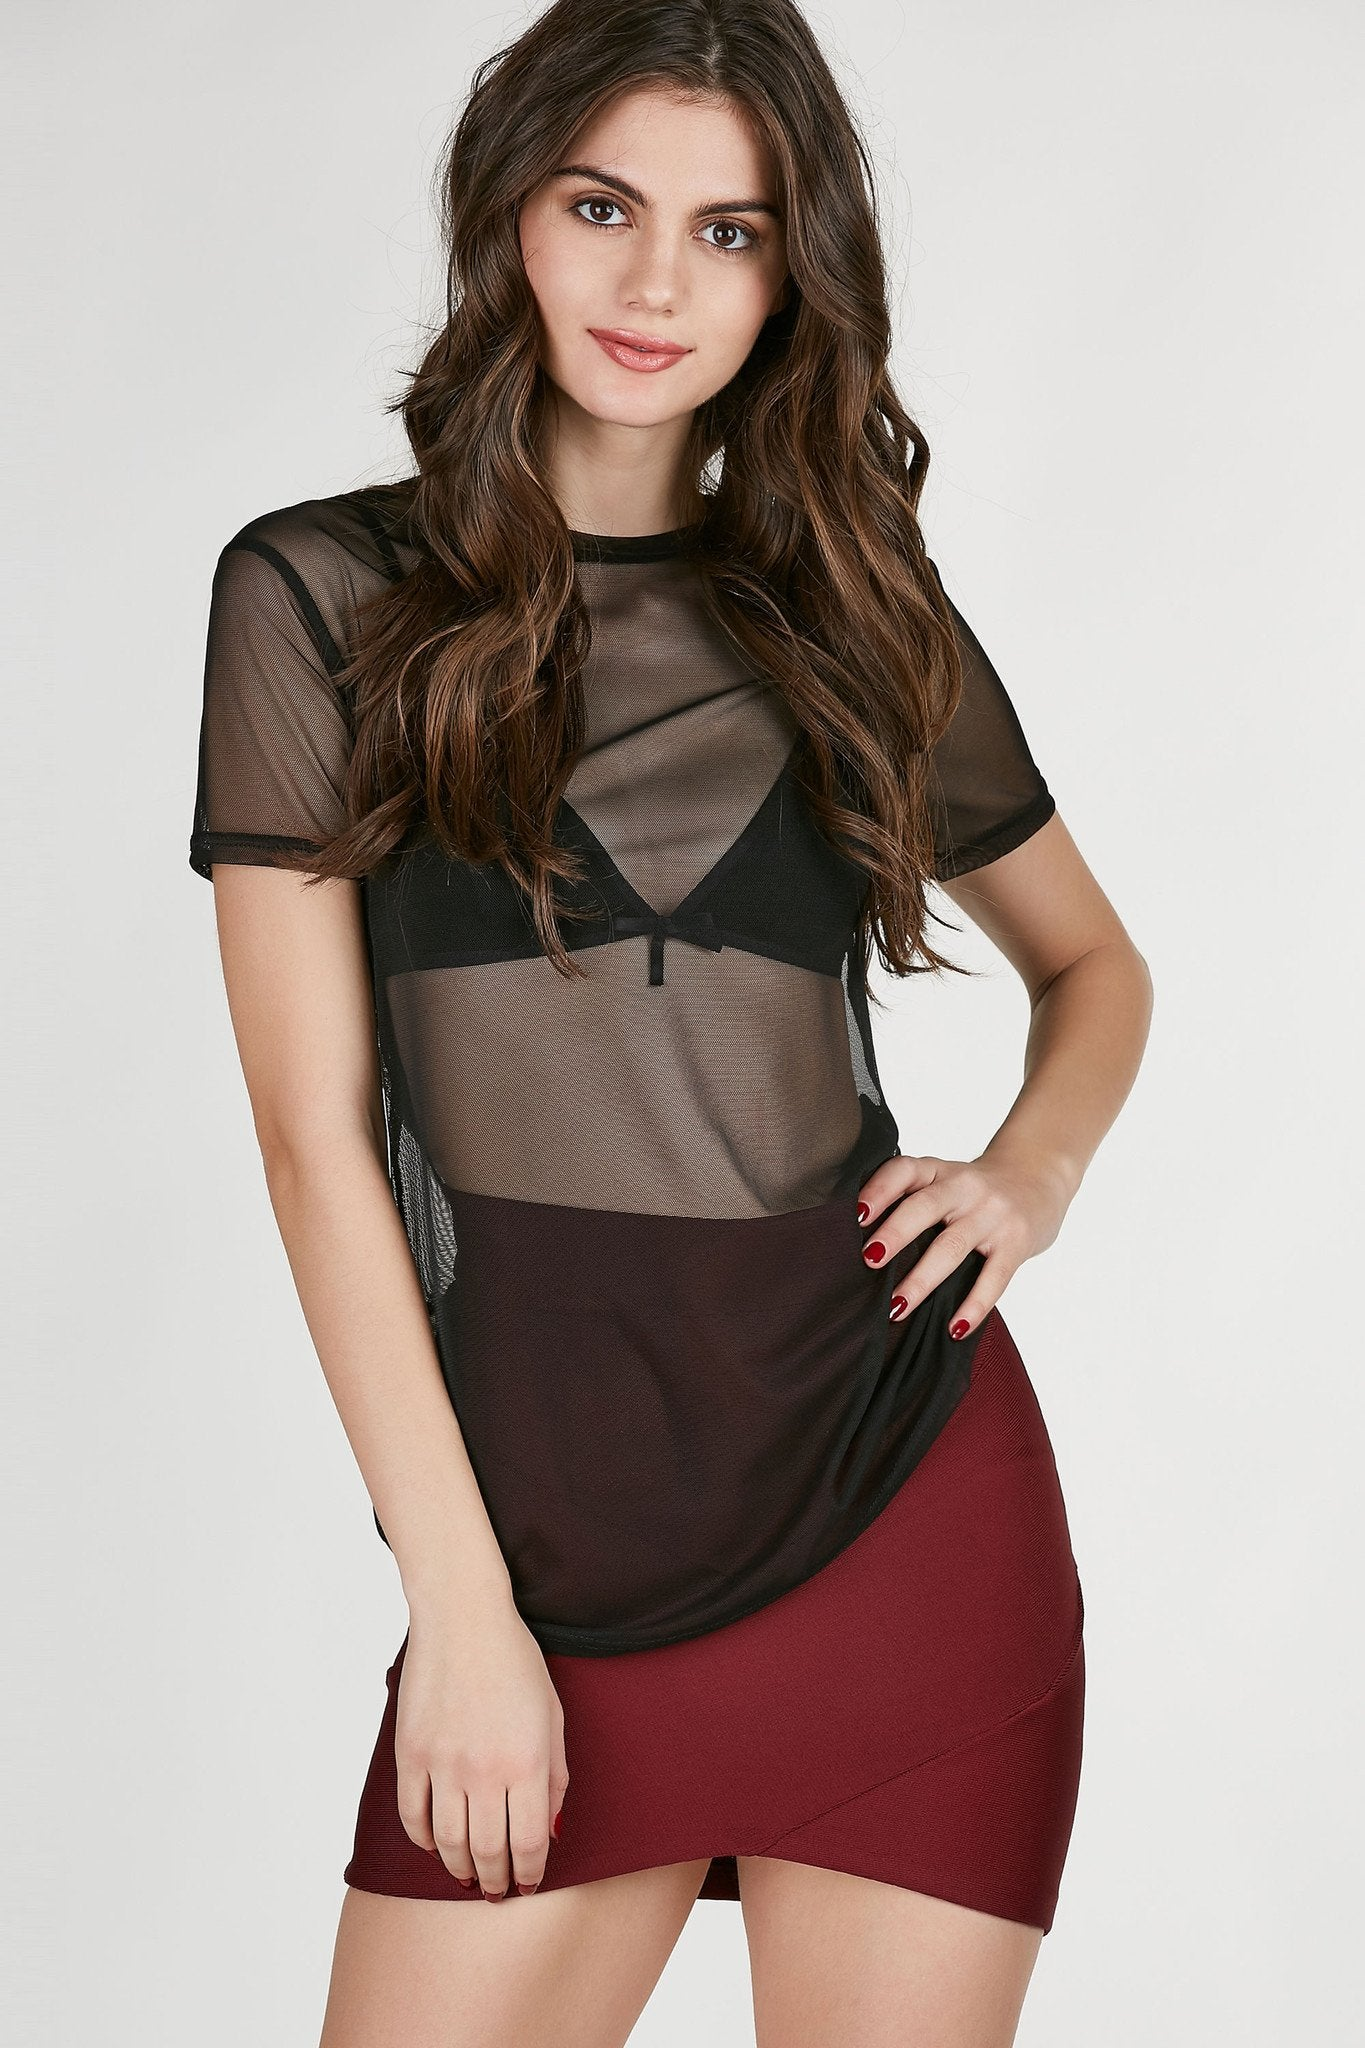 Round neck short sleeve top made of lightweight mesh material. Relaxed fit with straight hem all around.